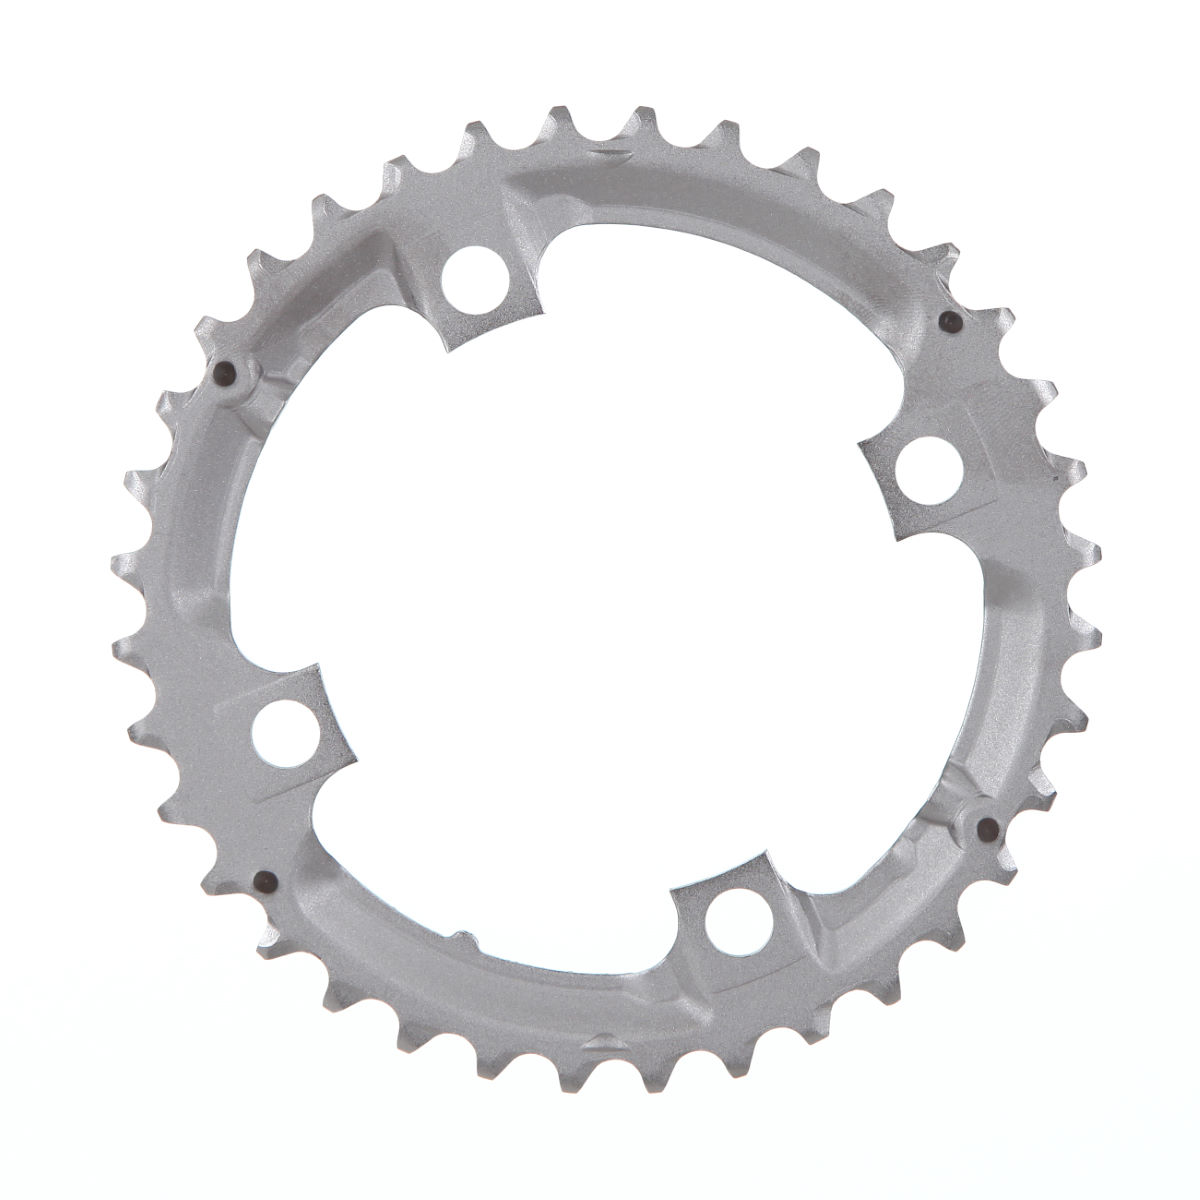 Shimano Fc-m532 Silver 36t Chainring - 36t 104bcd Silver  Chain Rings